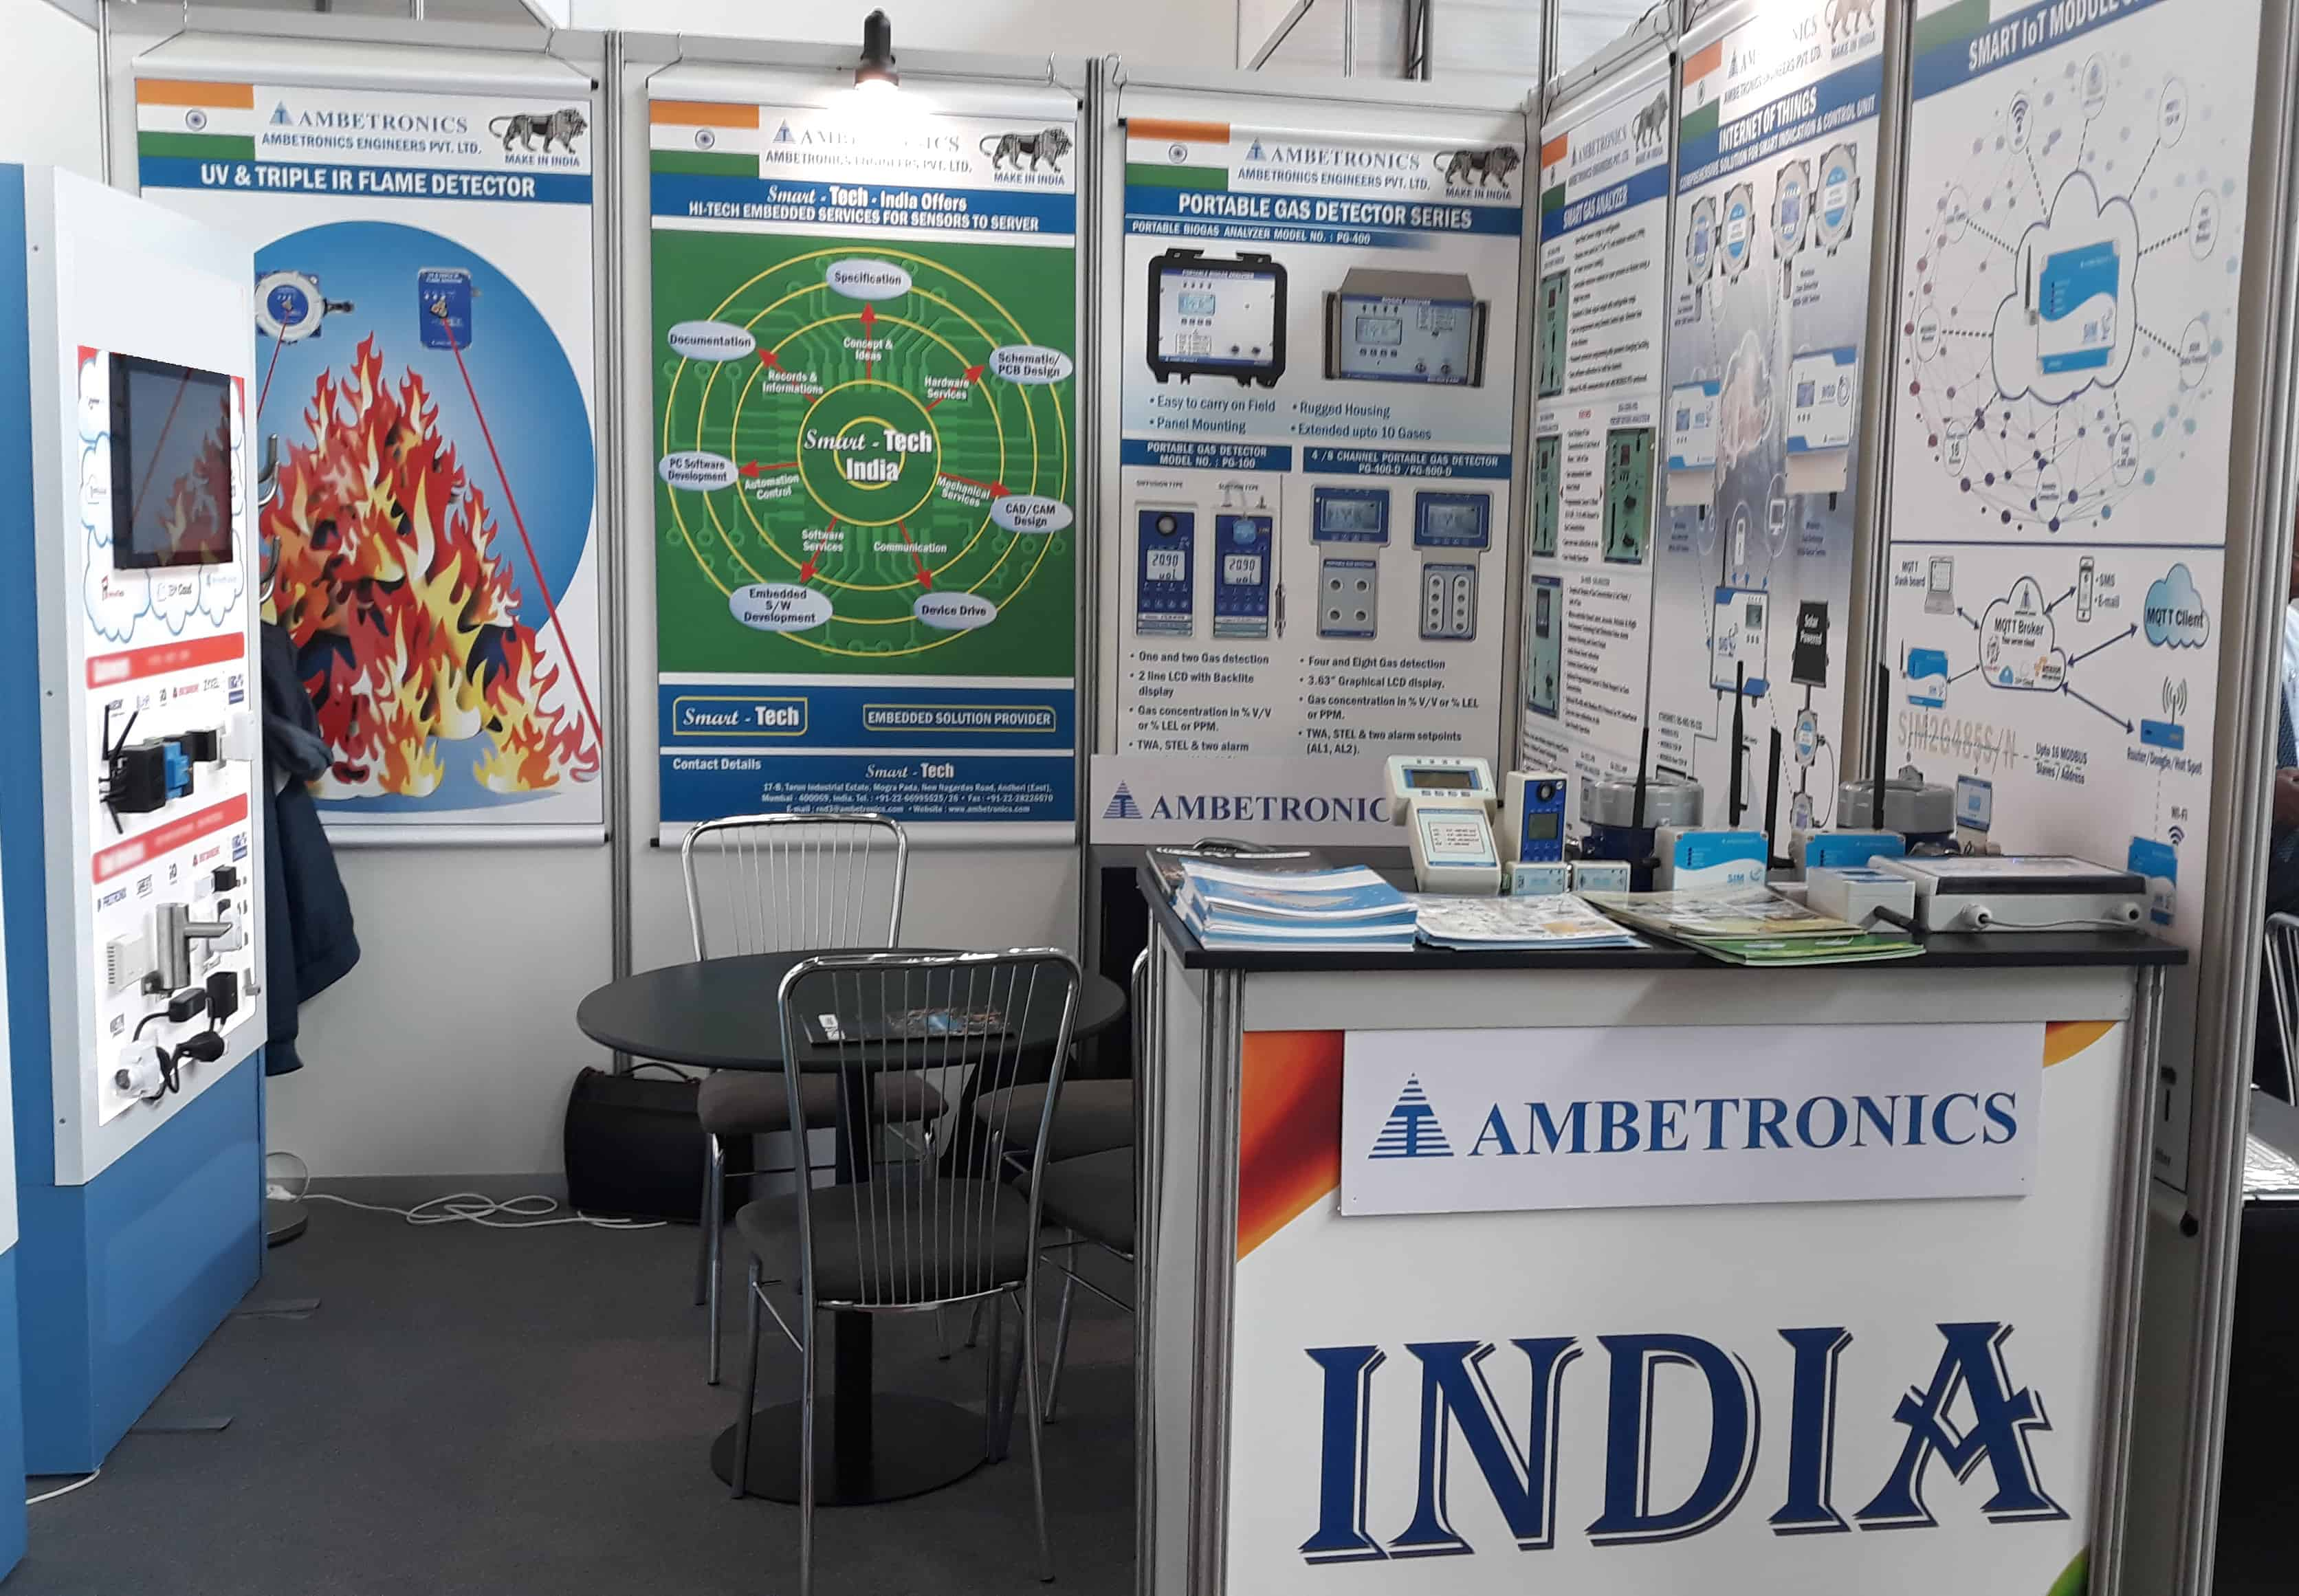 Ambetronics Stall at Amper 2019 Exhibition, Czech Republic, Europe.